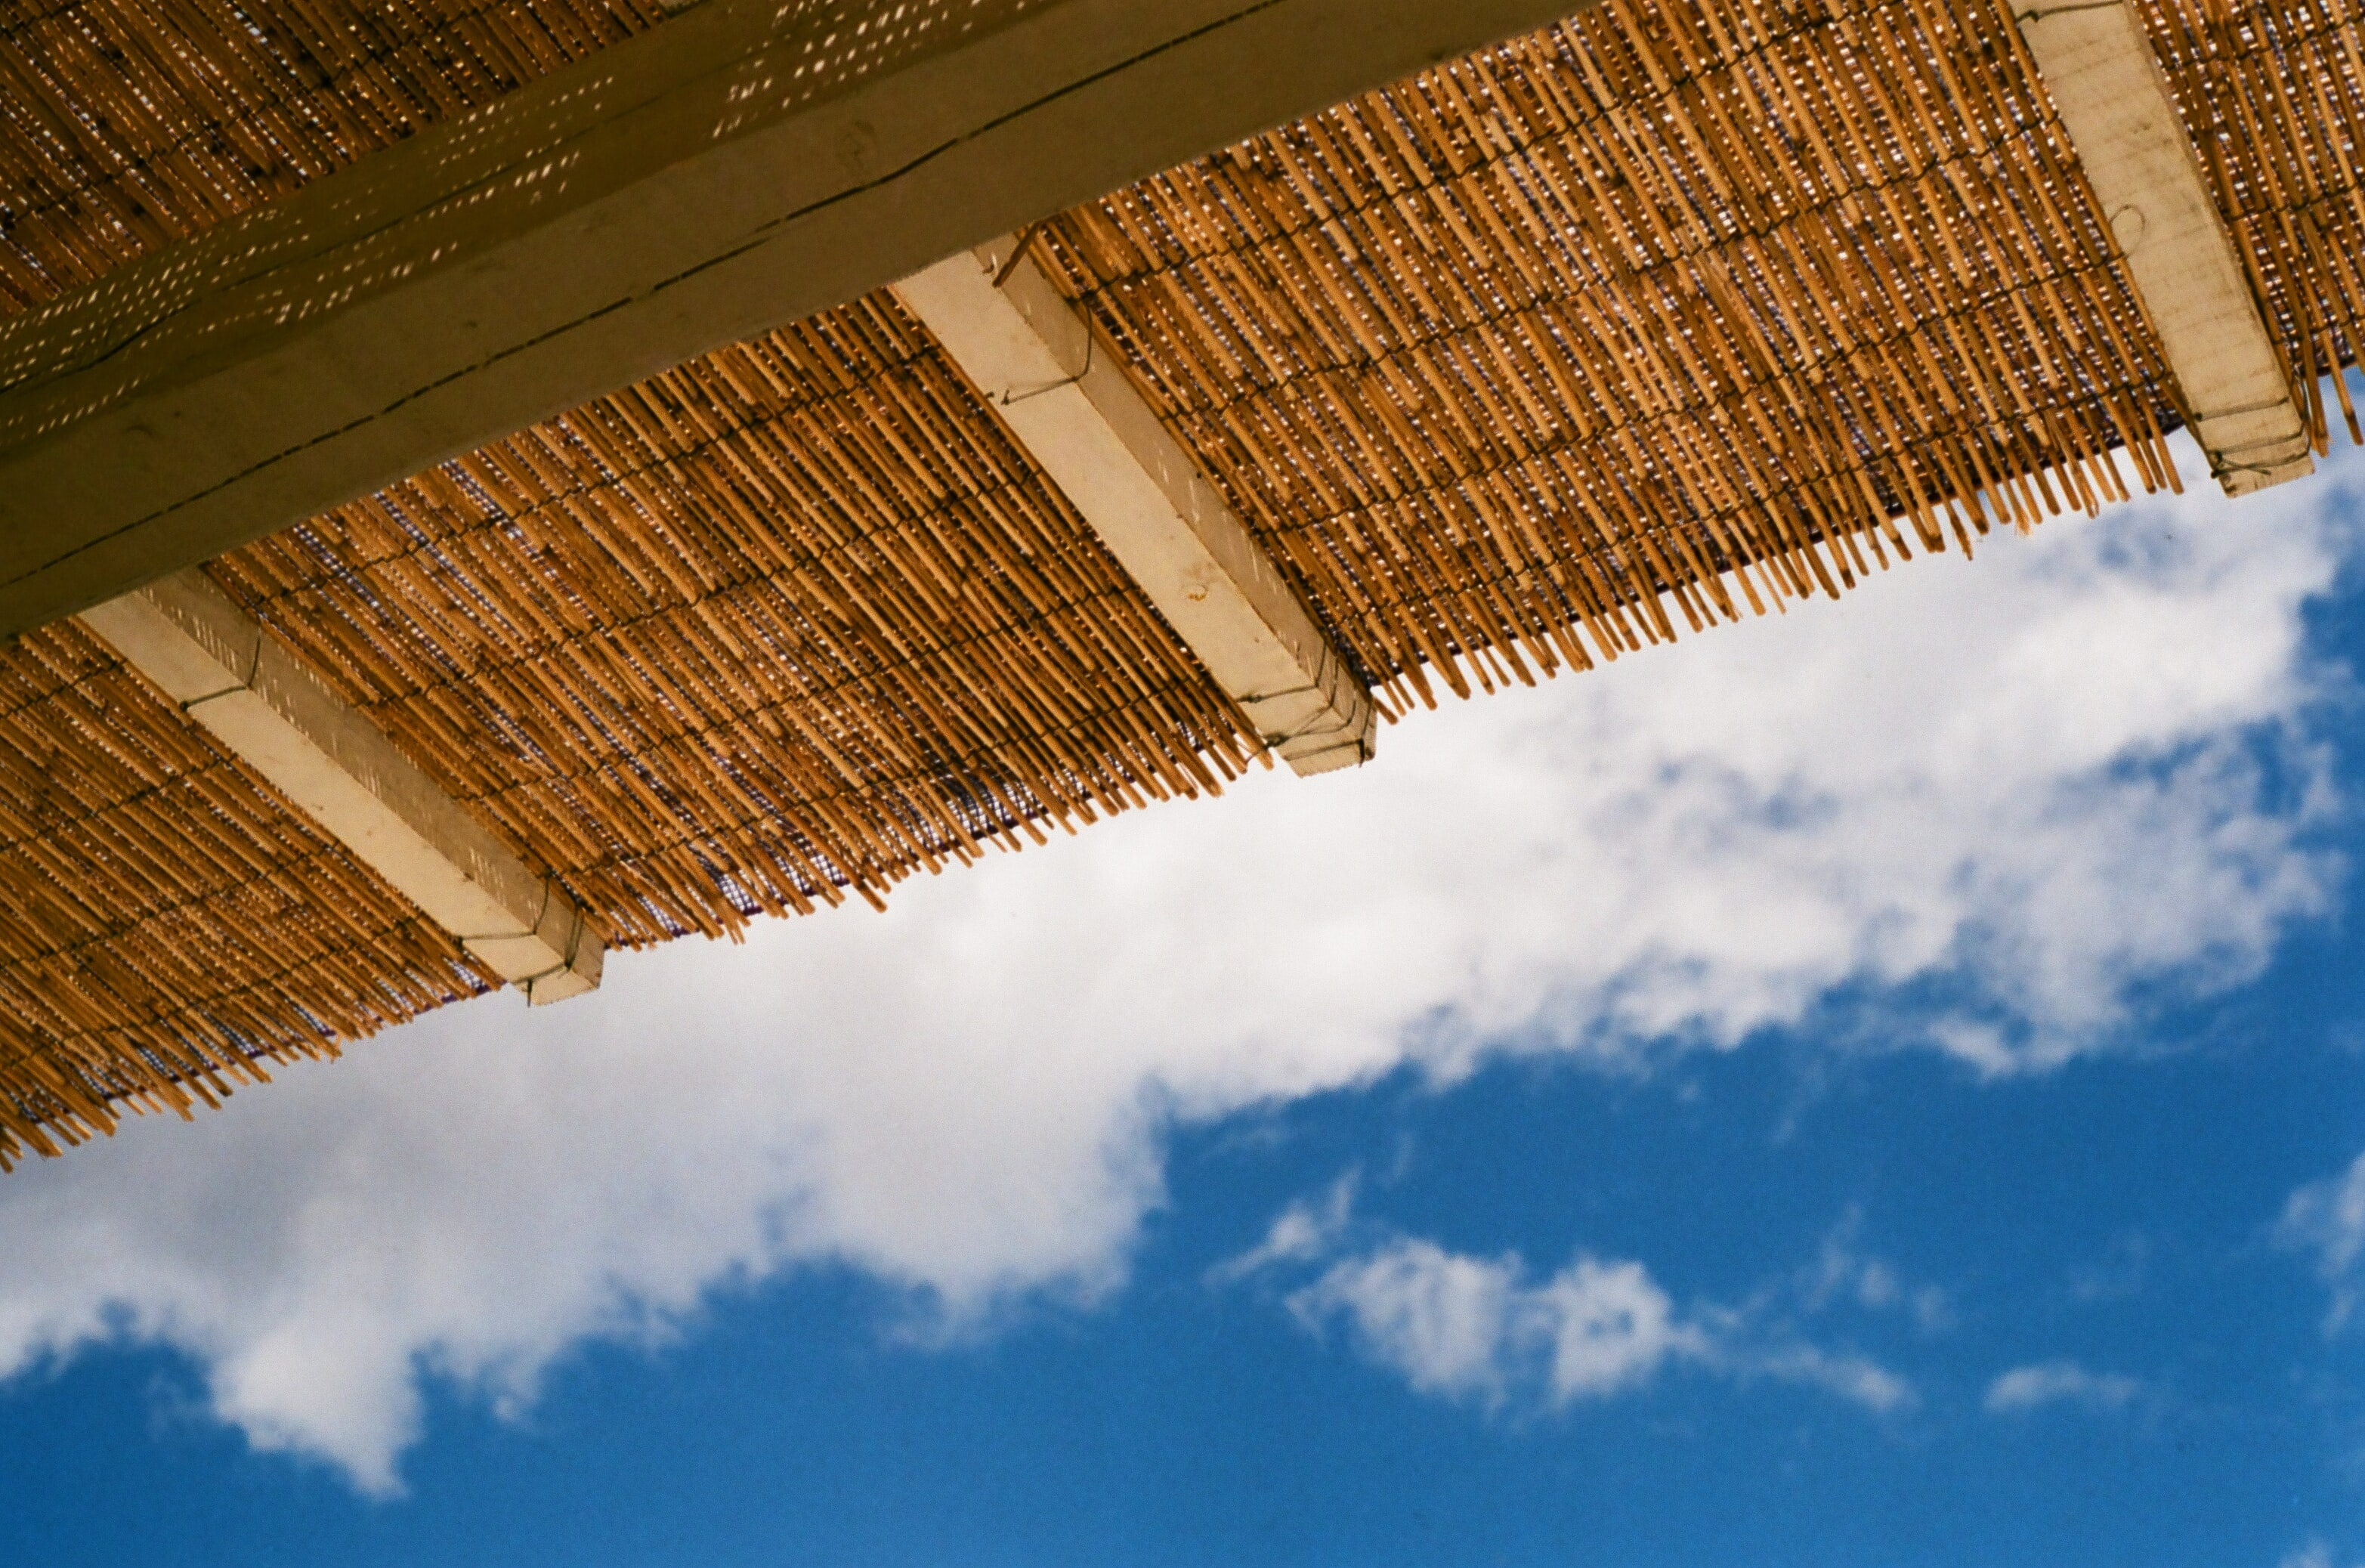 View at the thatched roof with woven rattan and a blue sky at Argostoli